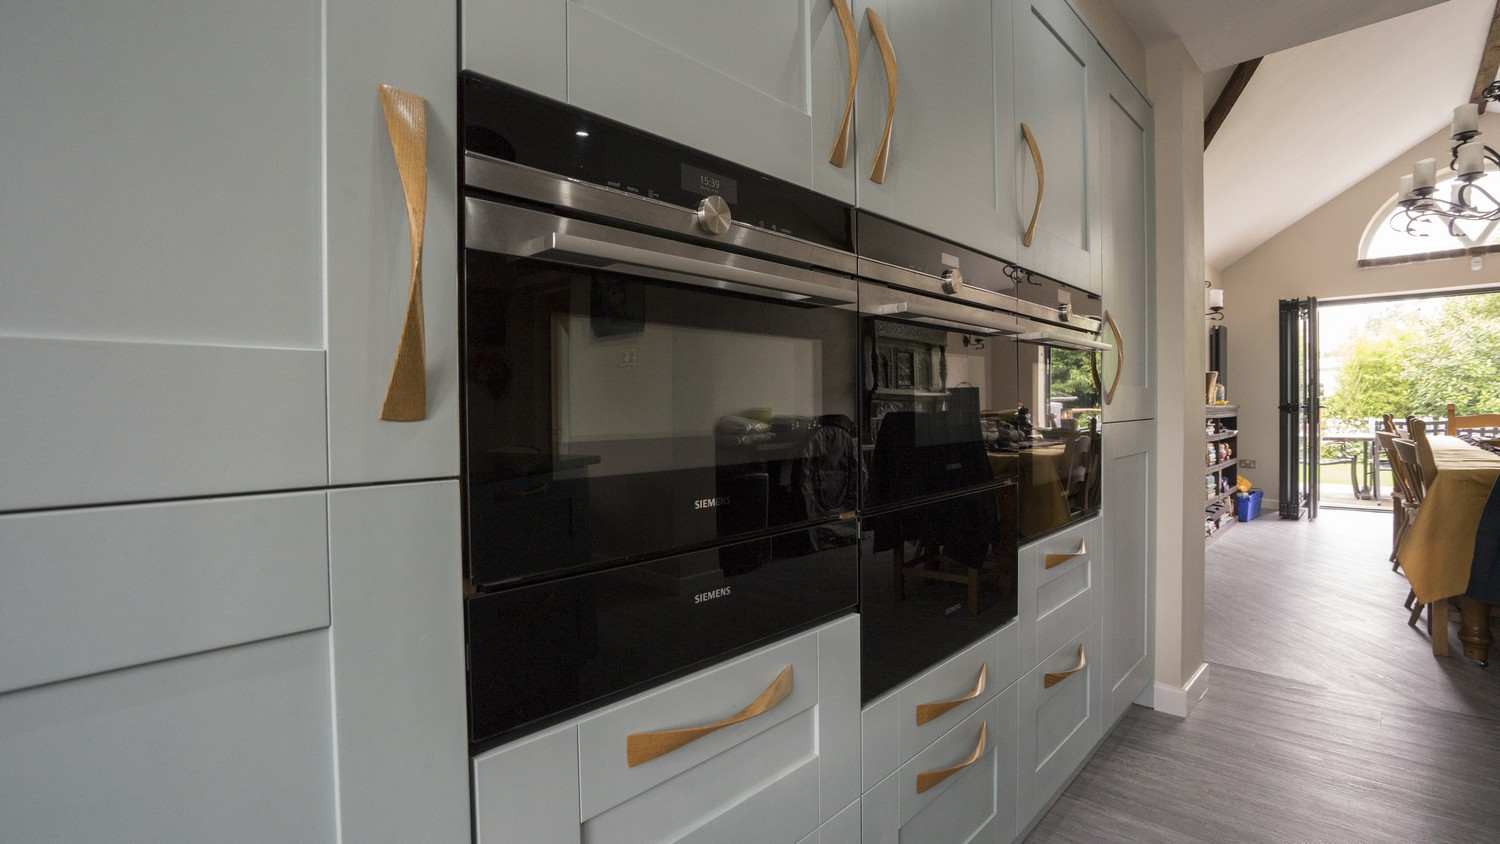 Close up of the Integrated appliances installed in the Wigan kitchen.